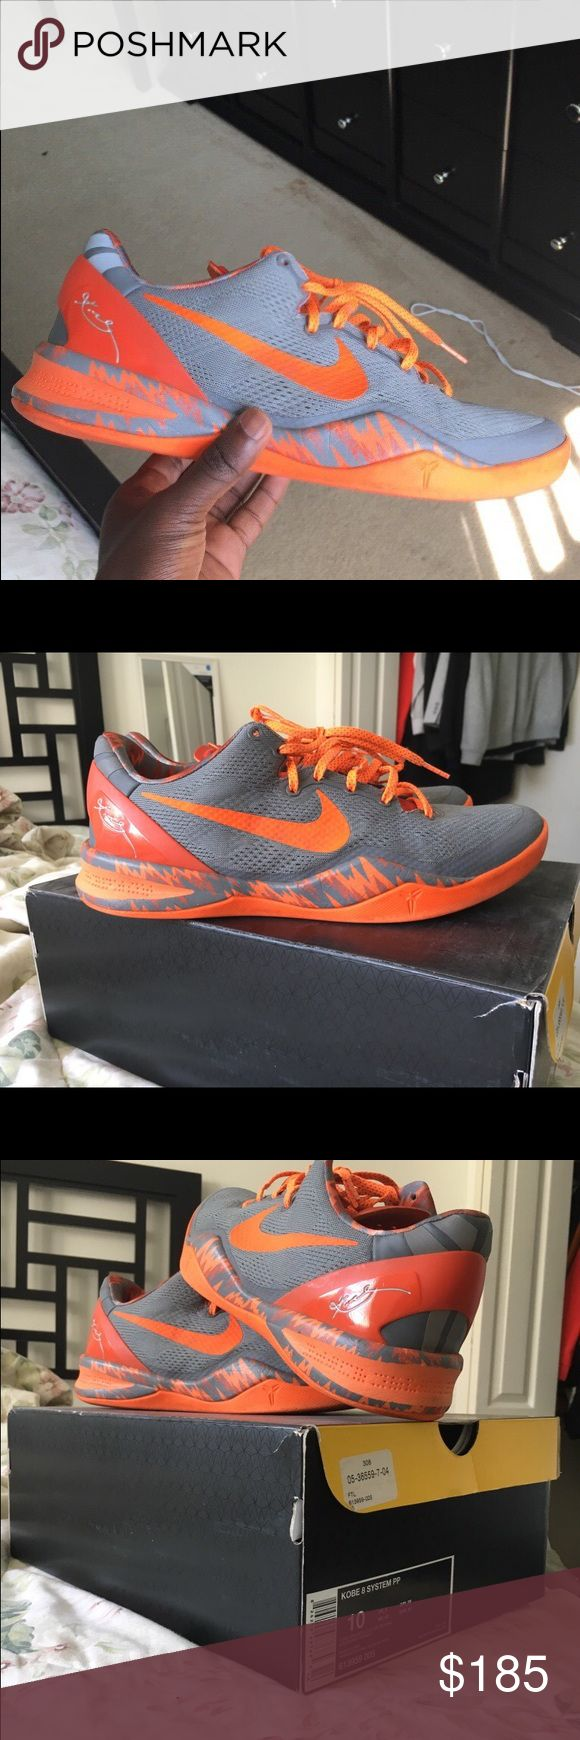 Size 10 Kobe 8s Size 10, Kept in great condition. Price is negotiable, just want the gone. Dont really wear them anymore Nike Shoes Athletic Shoes